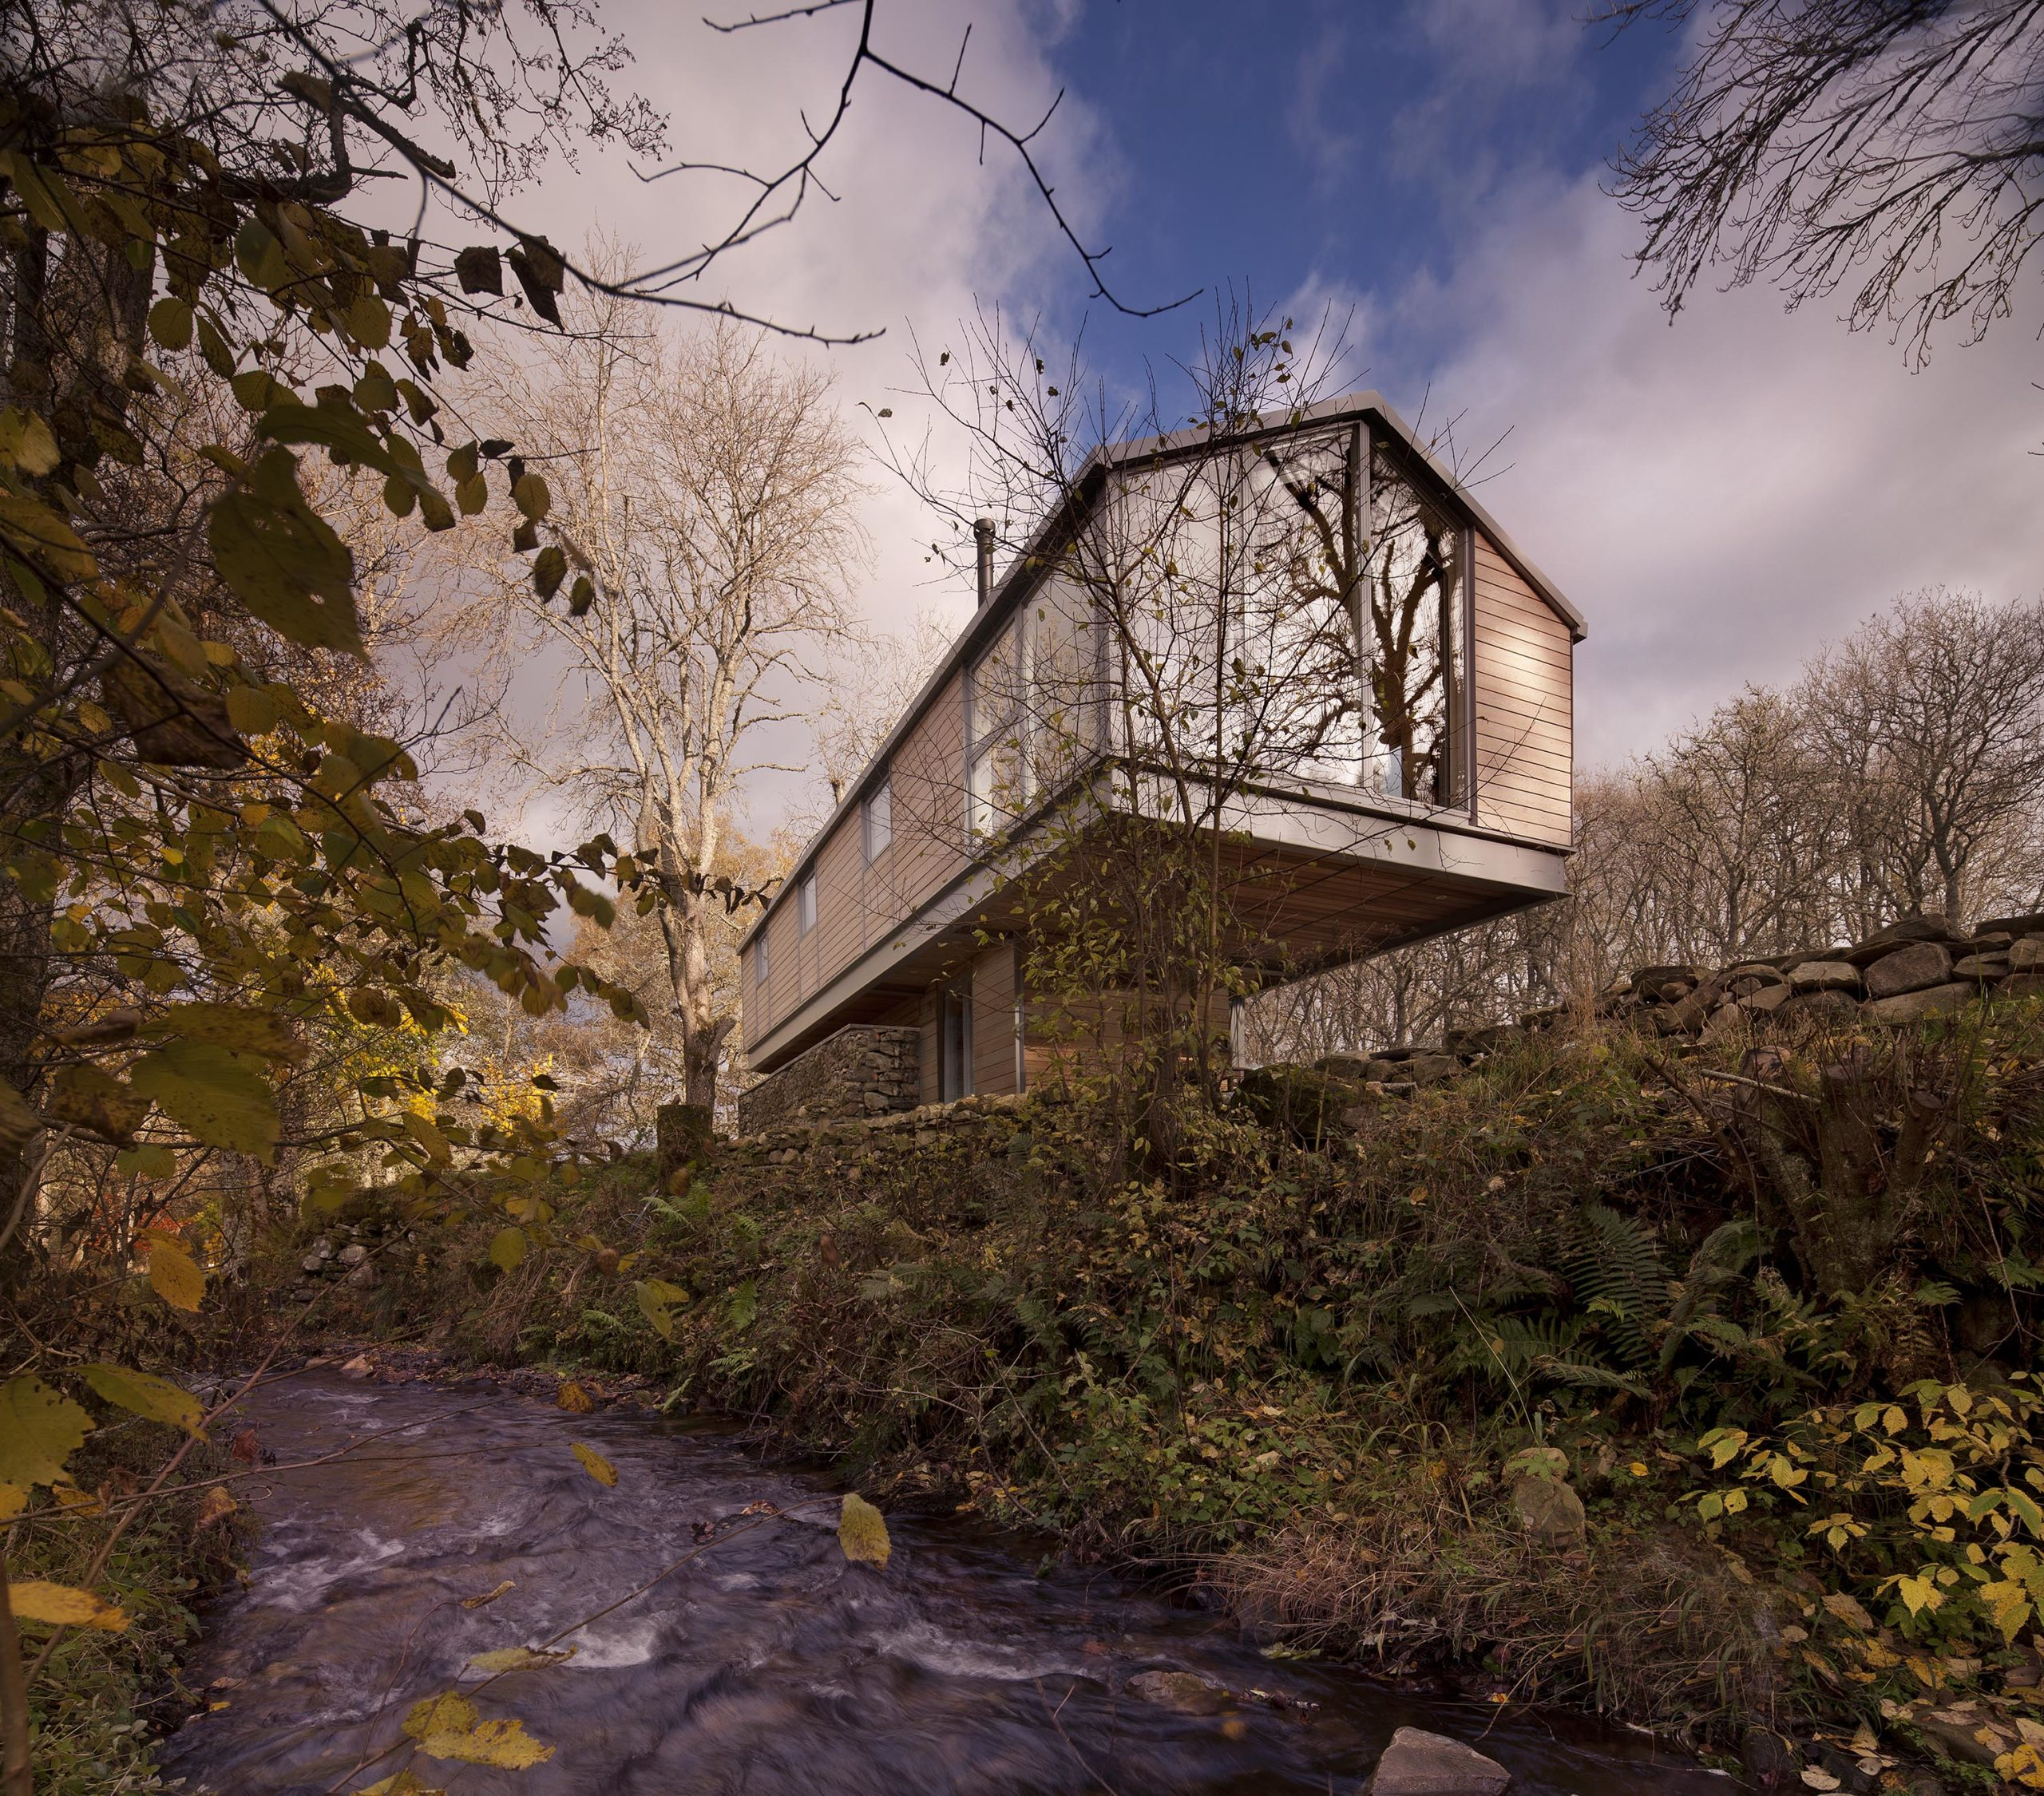 scottish architecture Flax Mill by TAP Architects, Perth and Kinross, Scotland, United Kingdom